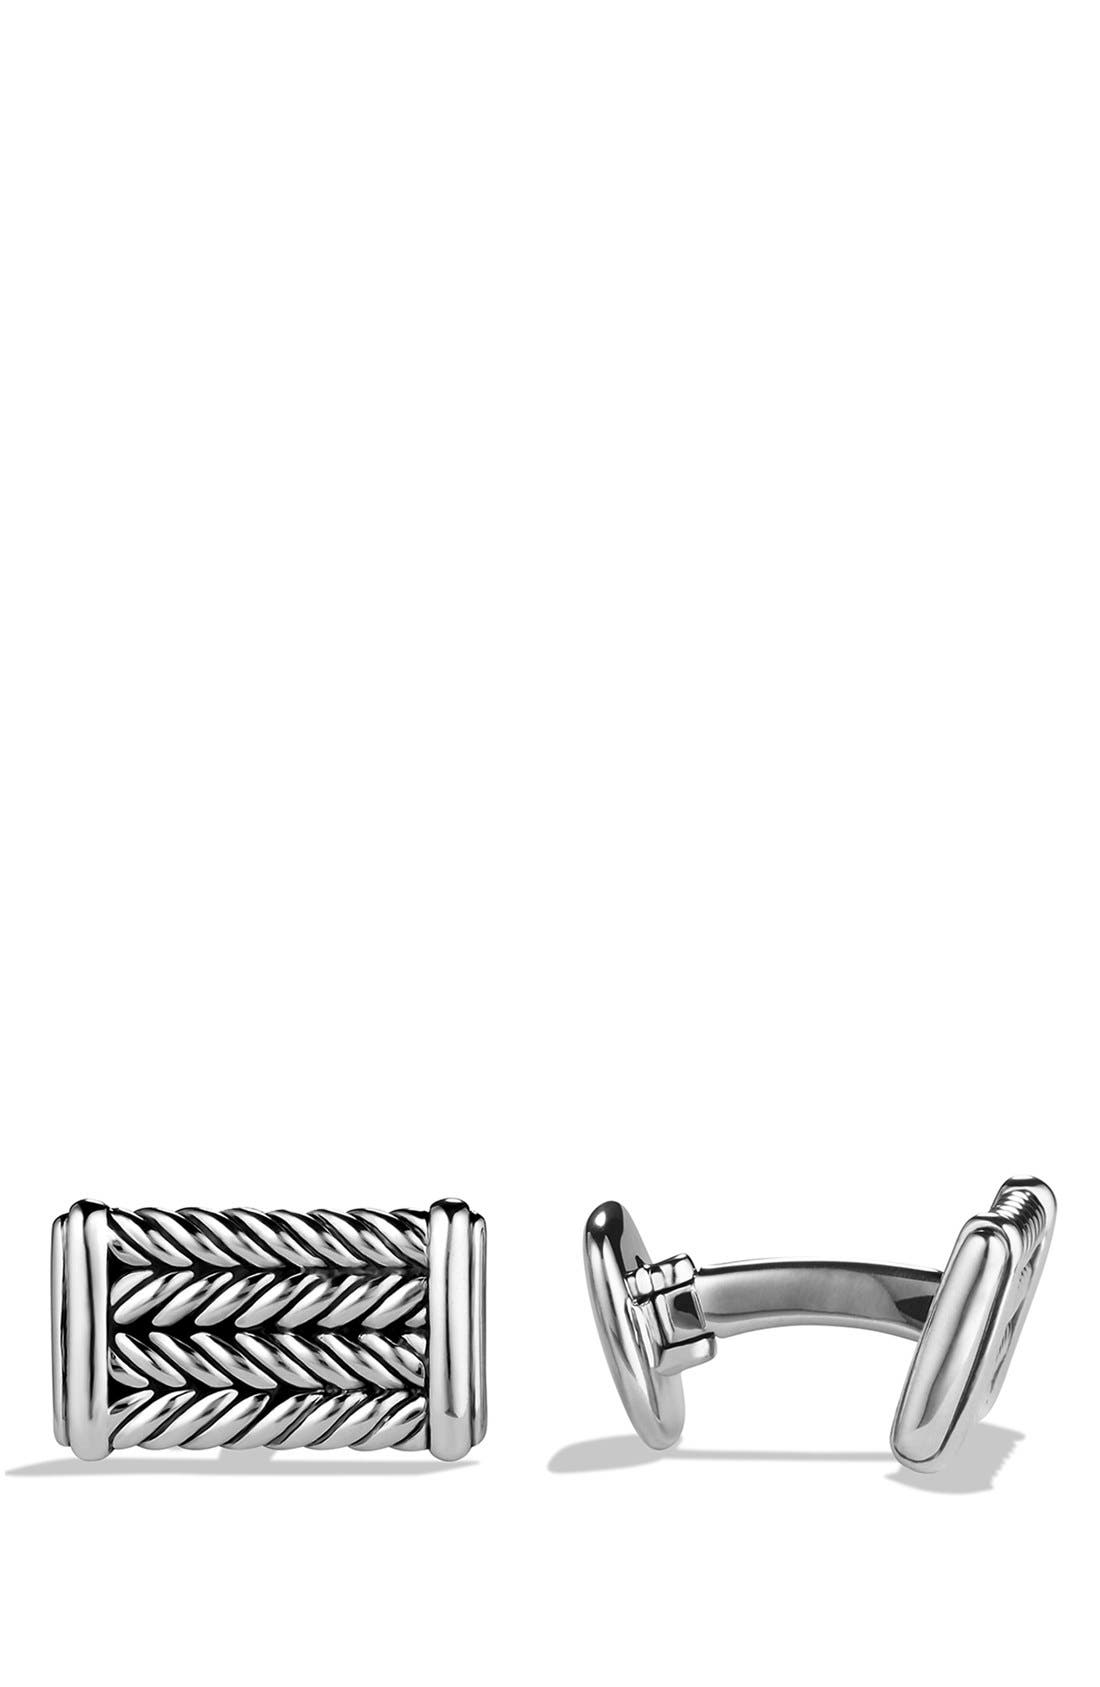 DAVID YURMAN Chevron Cuff Links